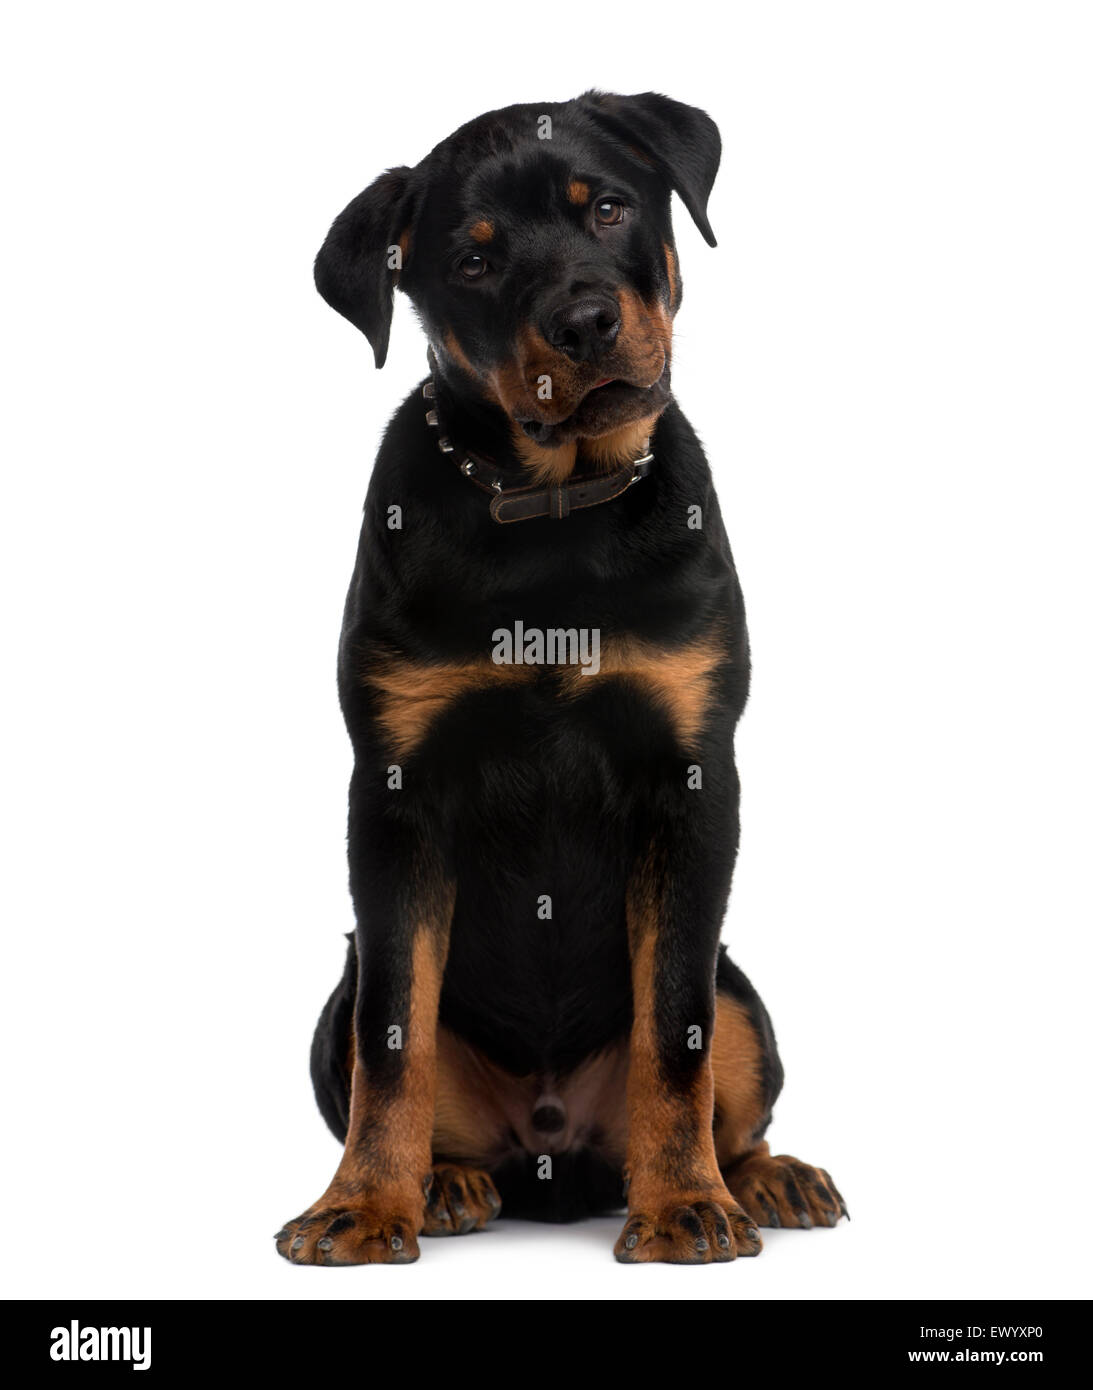 Rottweiler (9 months old) sitting in front of a white background - Stock Image